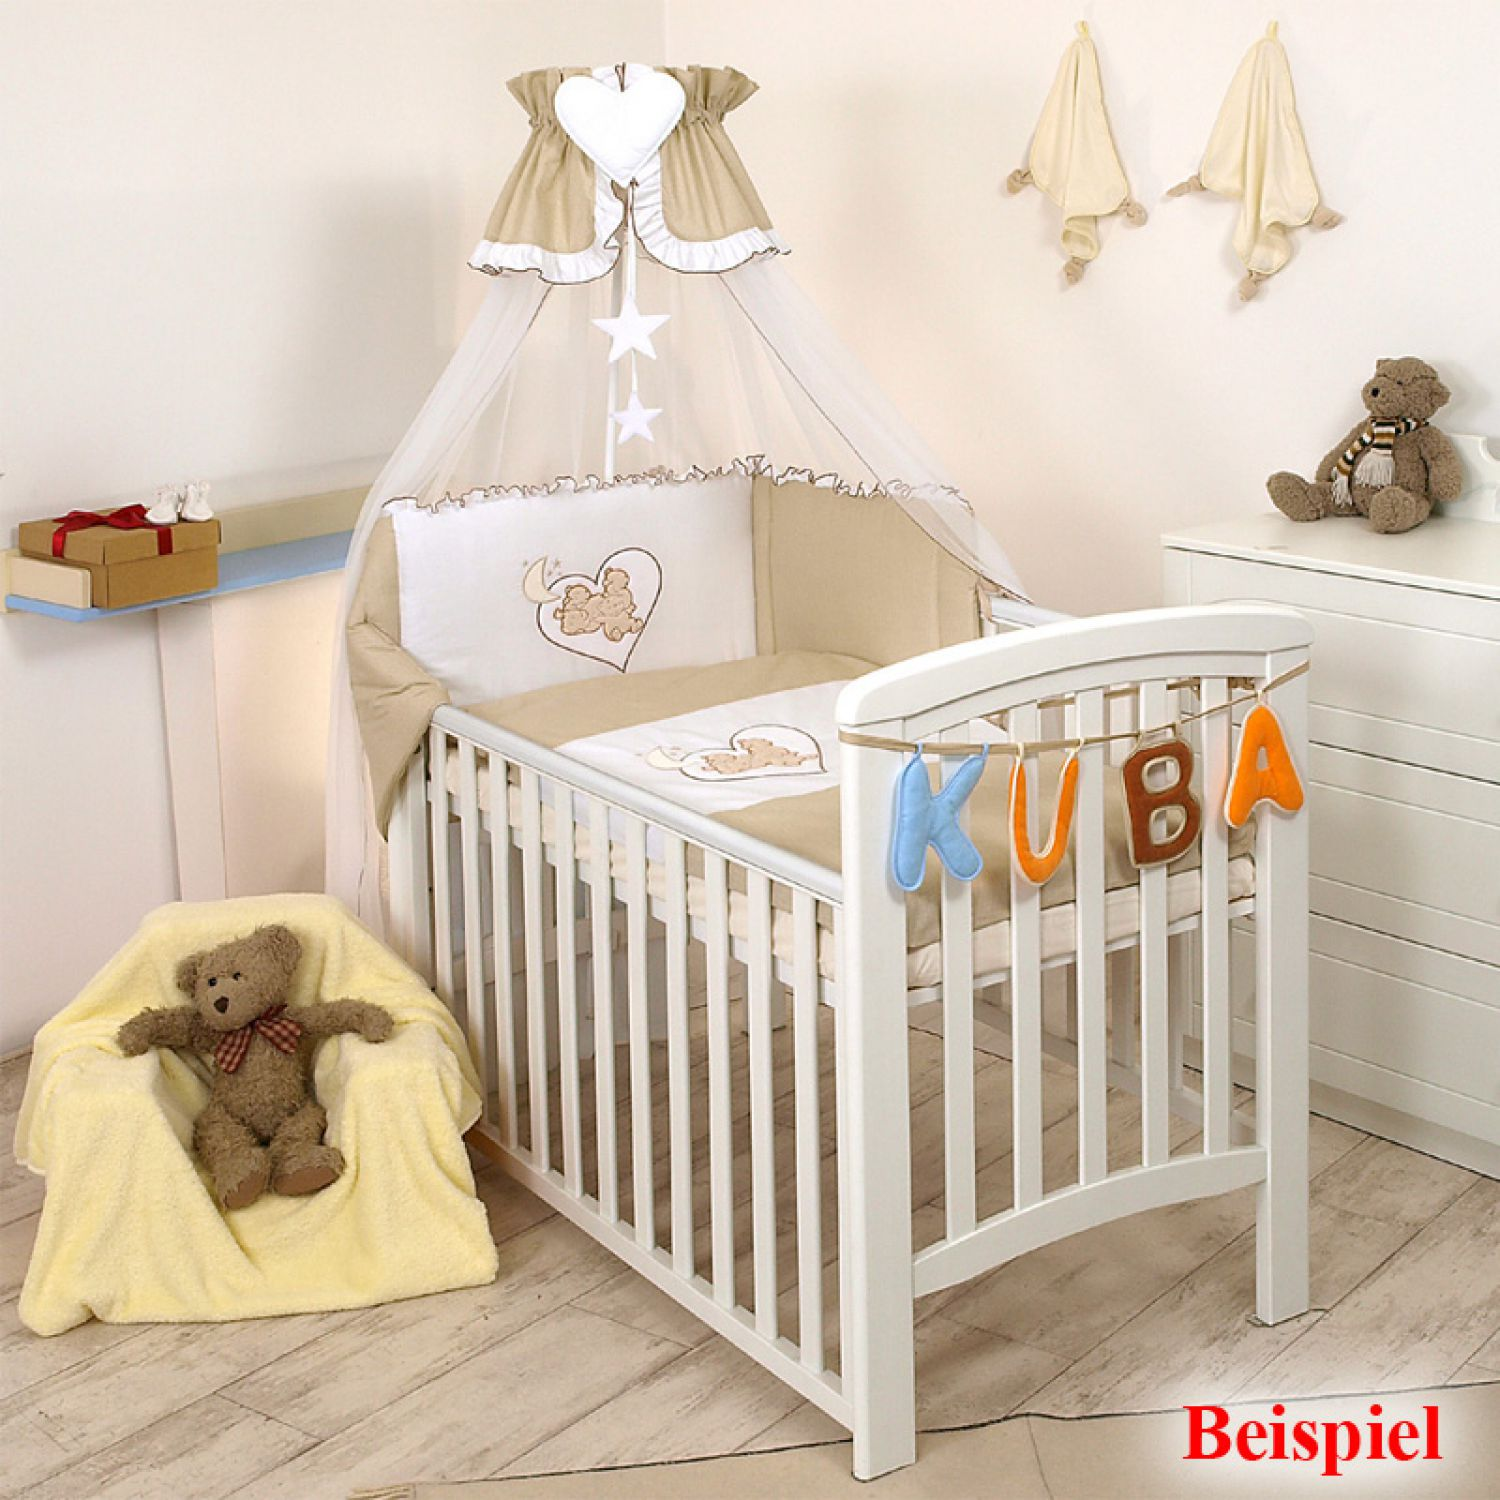 7tlg babybettw sche 135x100cm kinderbettw sche bettw sche himmel nestchen set ebay. Black Bedroom Furniture Sets. Home Design Ideas